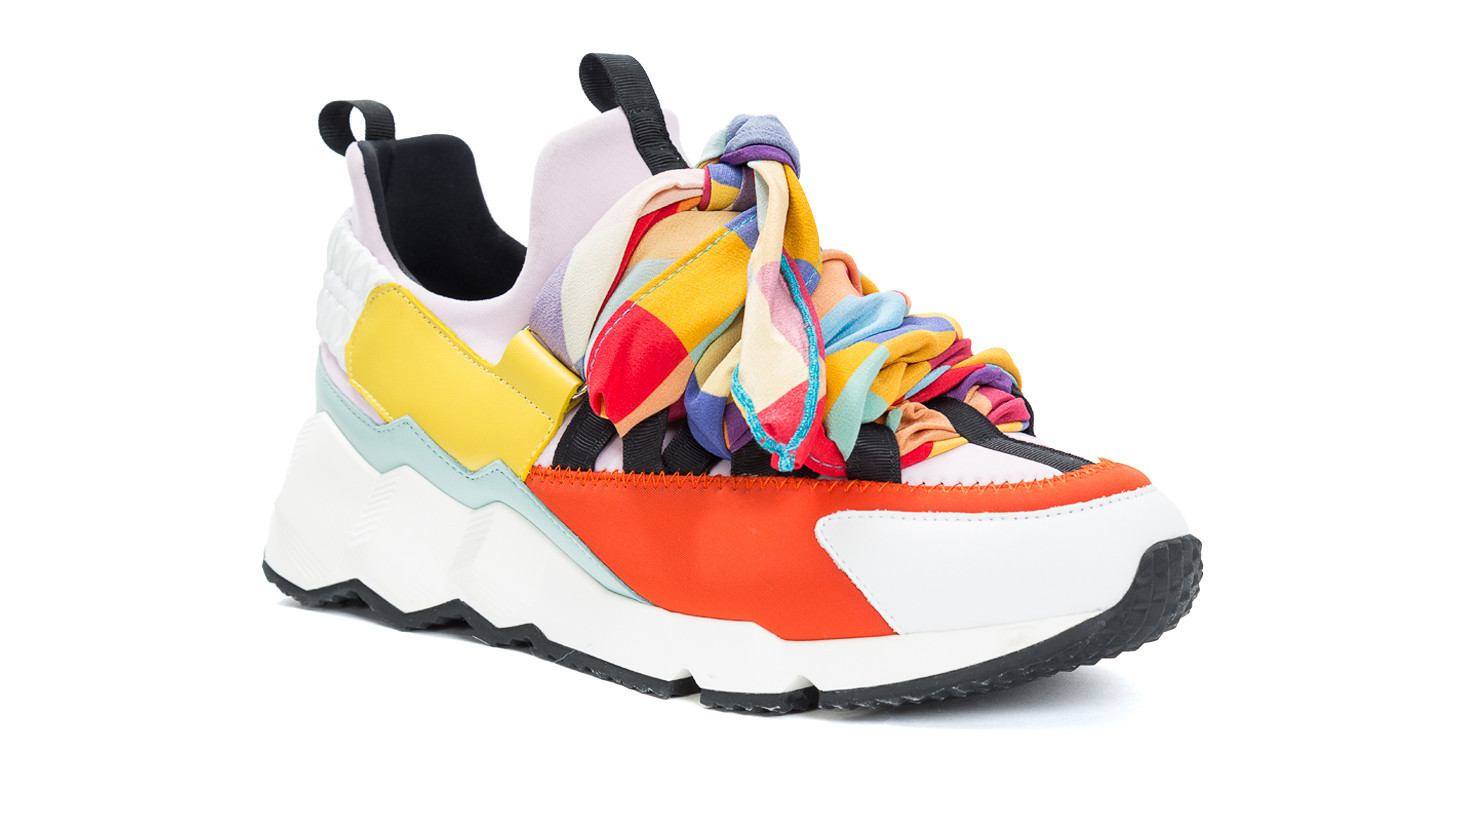 LHD x Pierre Hardy color-blocked Trek Comet neoprene and leather sneaker, $645 at The Webster at Sou